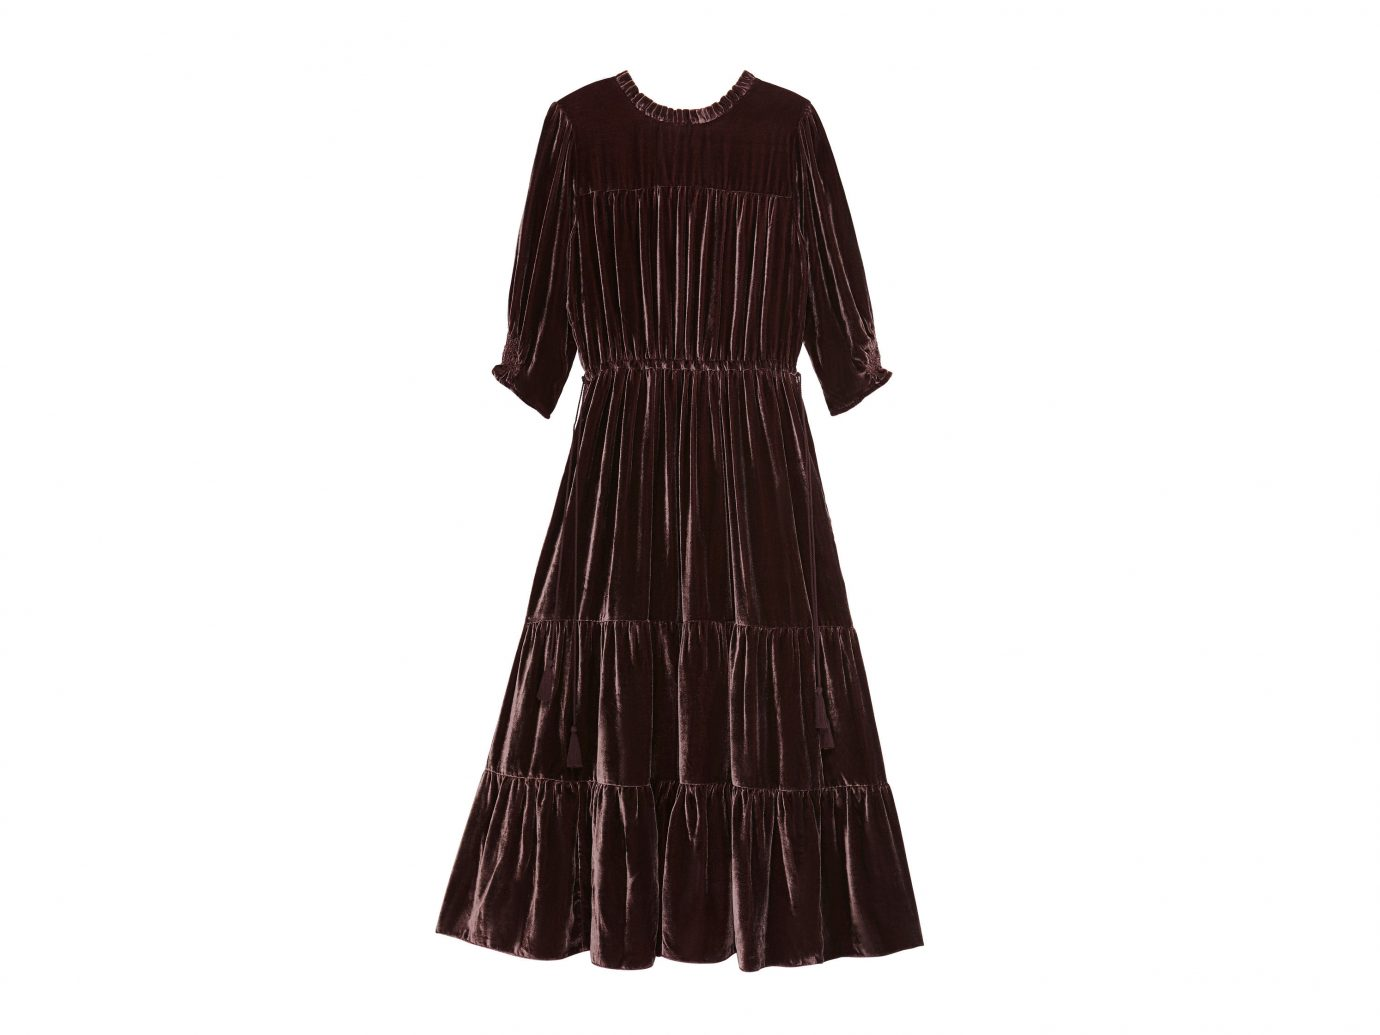 Style + Design clothing dress black sleeve brown gown pattern Design textile blouse fashion outerwear formal wear costume cocktail dress material velvet